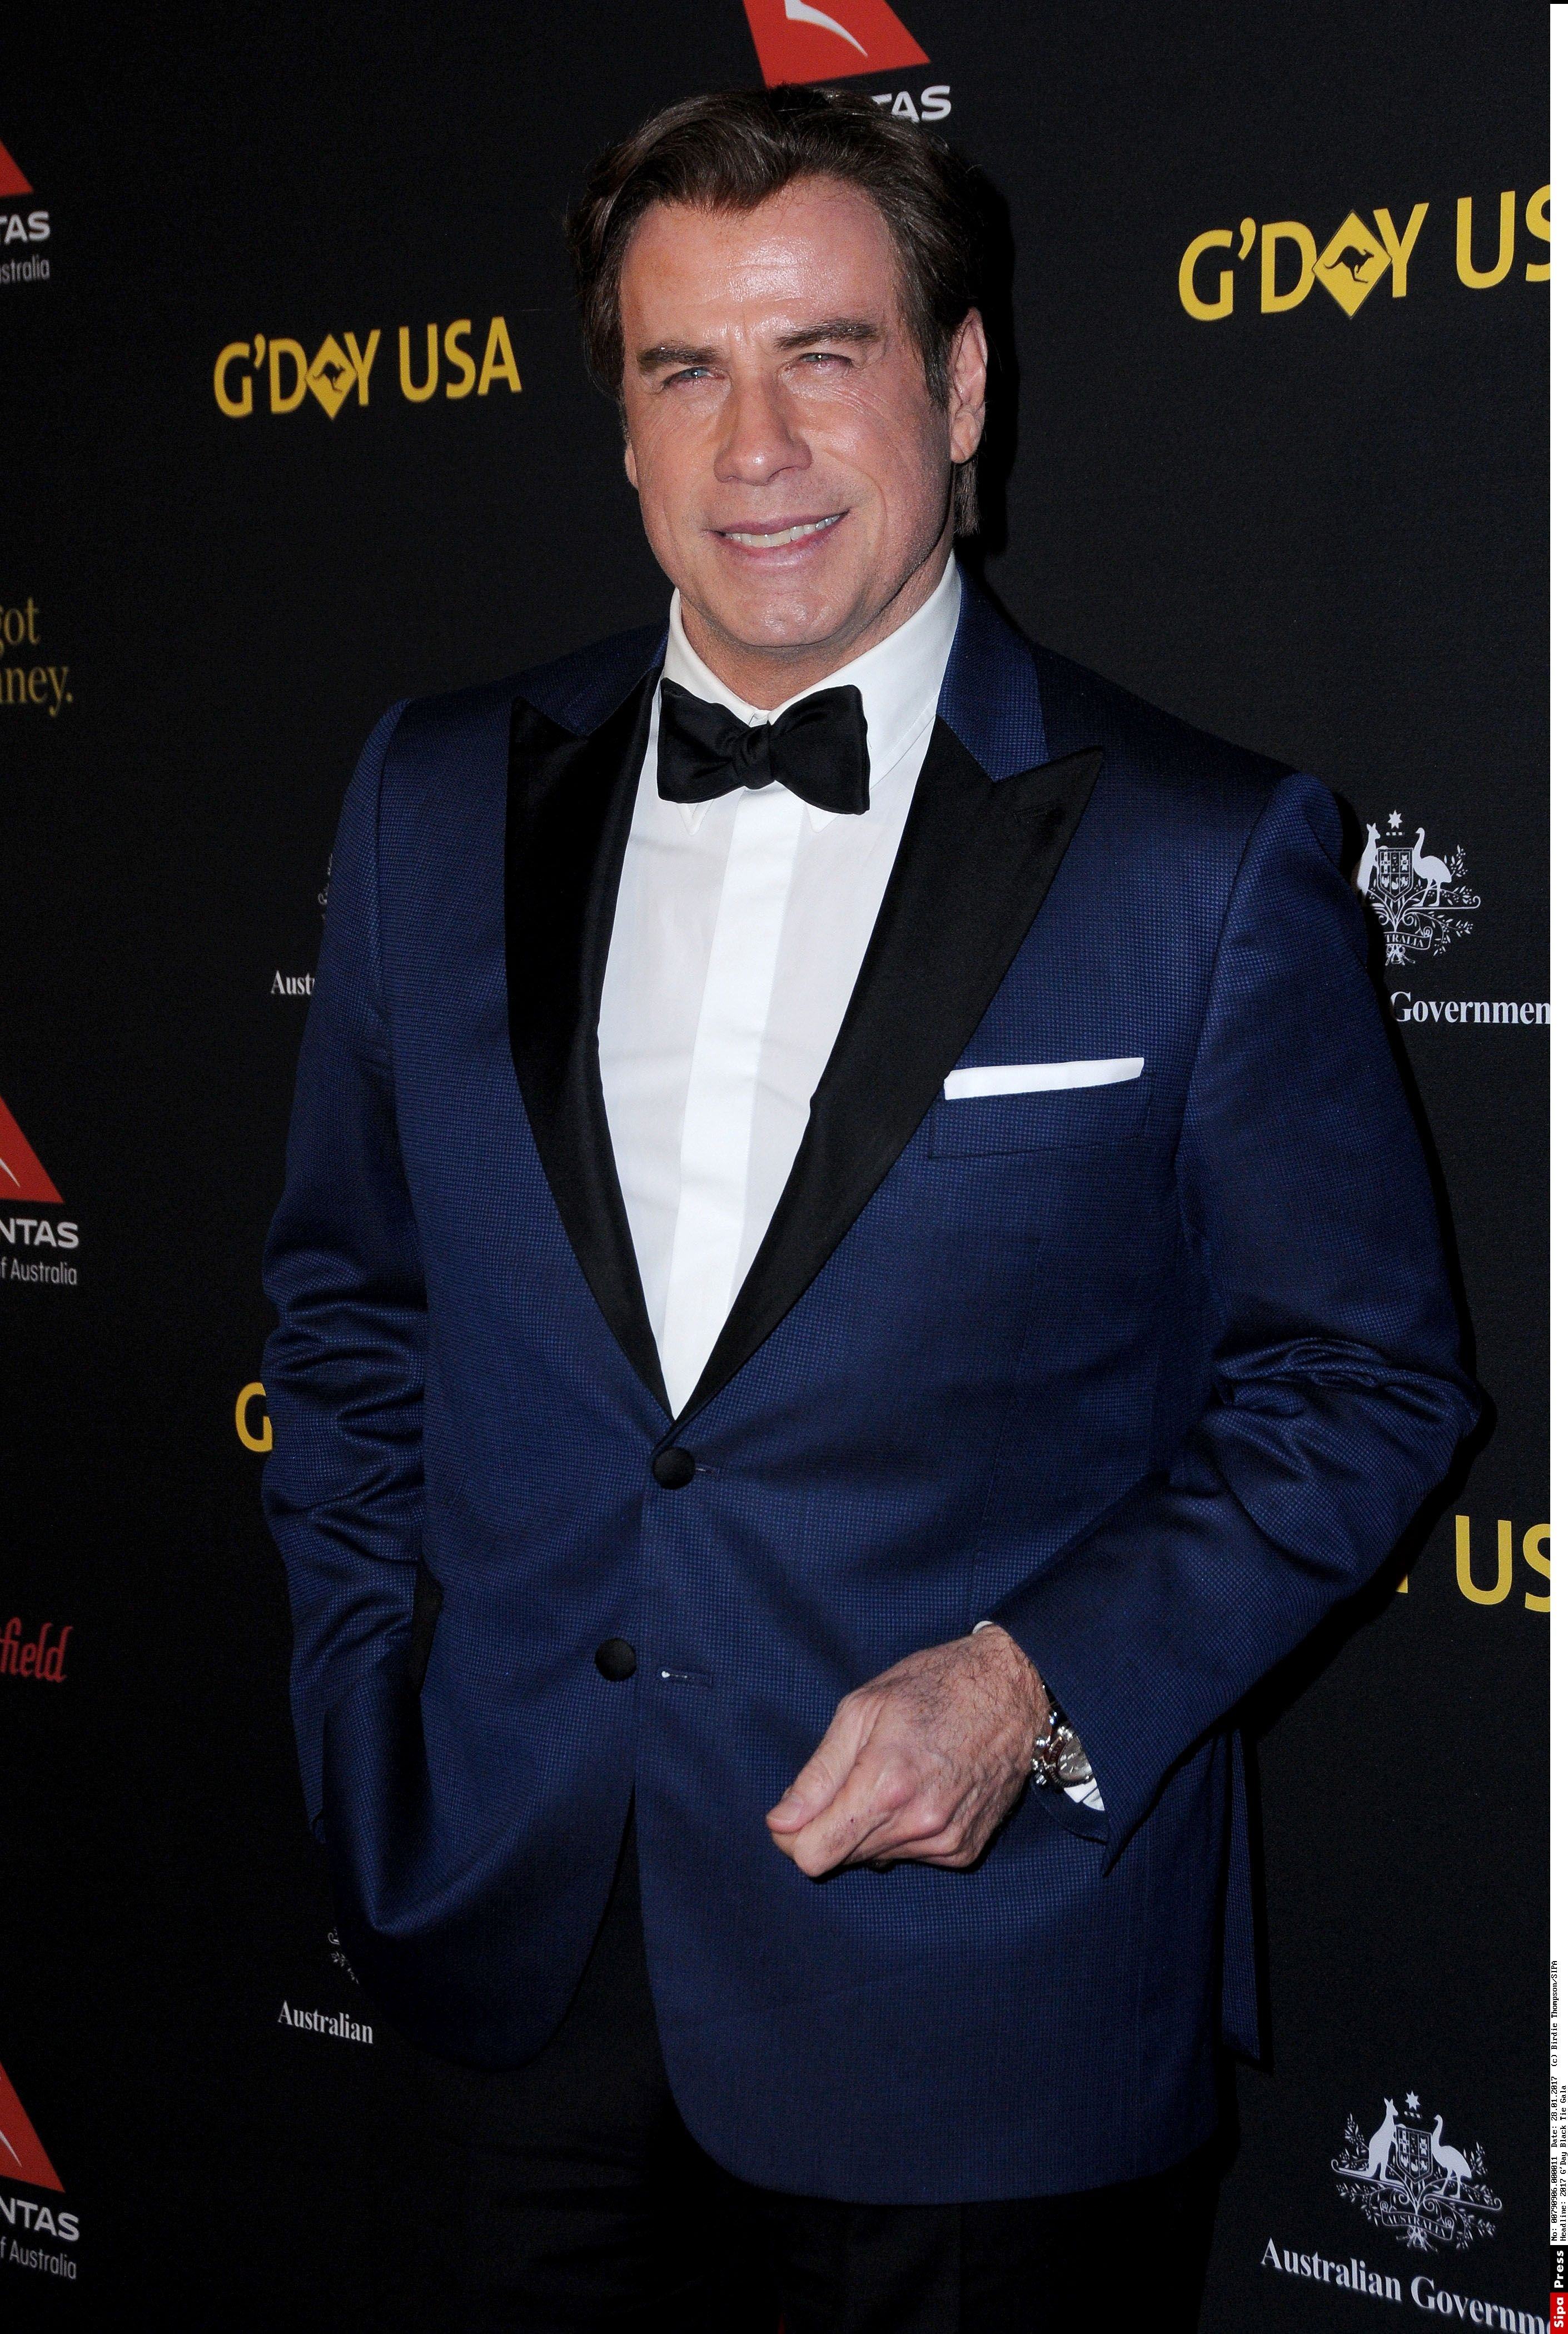 28 January 2017 - Hollywood, California - John Travolta. 2017 G'Day Black Tie Gala held at The Dolby Theater. Photo Credit: Birdie Thompson/AdMedia//ADMEDIA_adm_2017GDayUSALAGala_BT_011/Credit:Birdie Thompson/SIPA/1701291014, Image: 313545426, License: Rights-managed, Restrictions: , Model Release: no, Credit line: Profimedia, TEMP Sipa Press